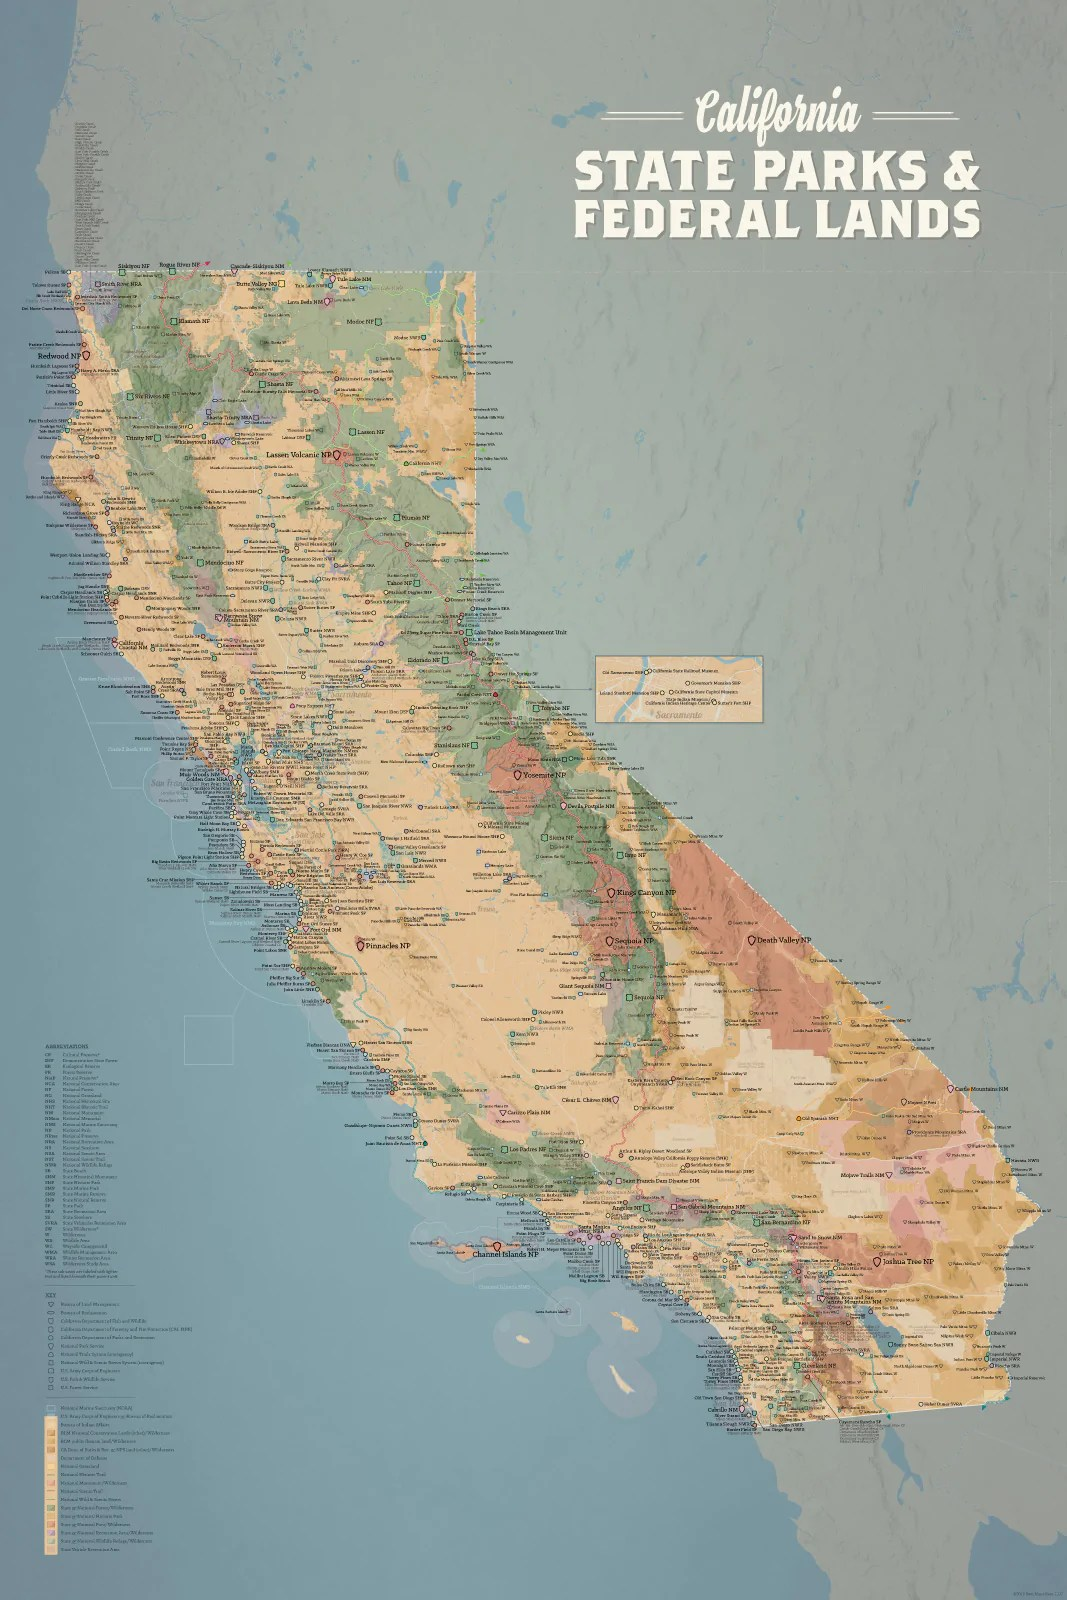 california state parks federal lands map 24x36 poster